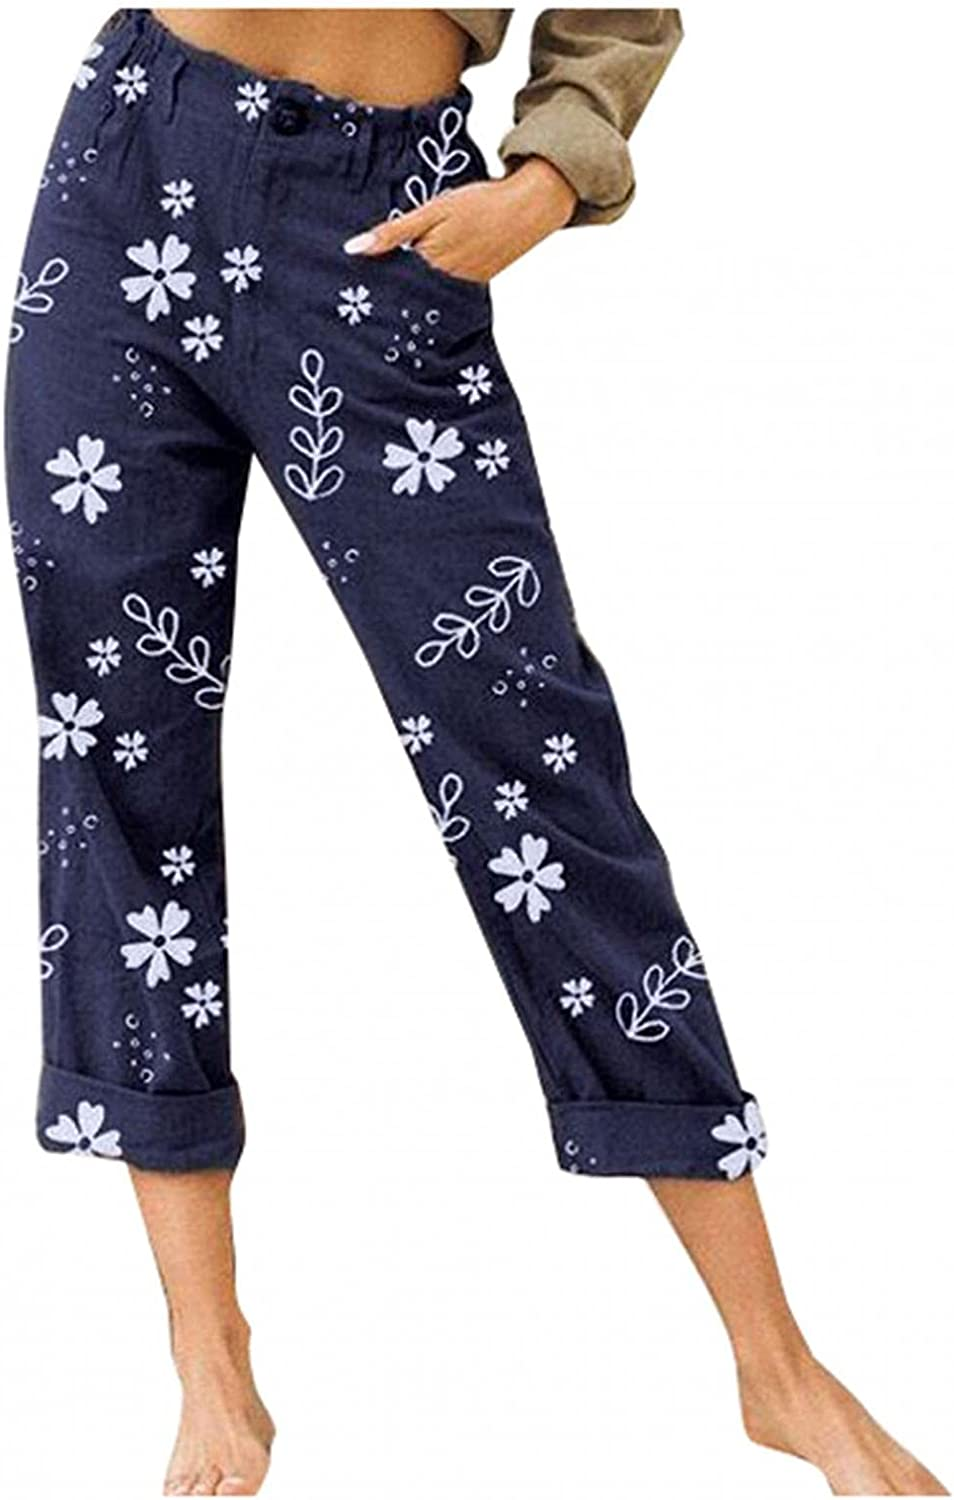 iLOOSKR Women's Summer Flowers Print Capri Pants with Pocket Casual Loose Straight Cropped Trouser Buttons Casua Straight Leg